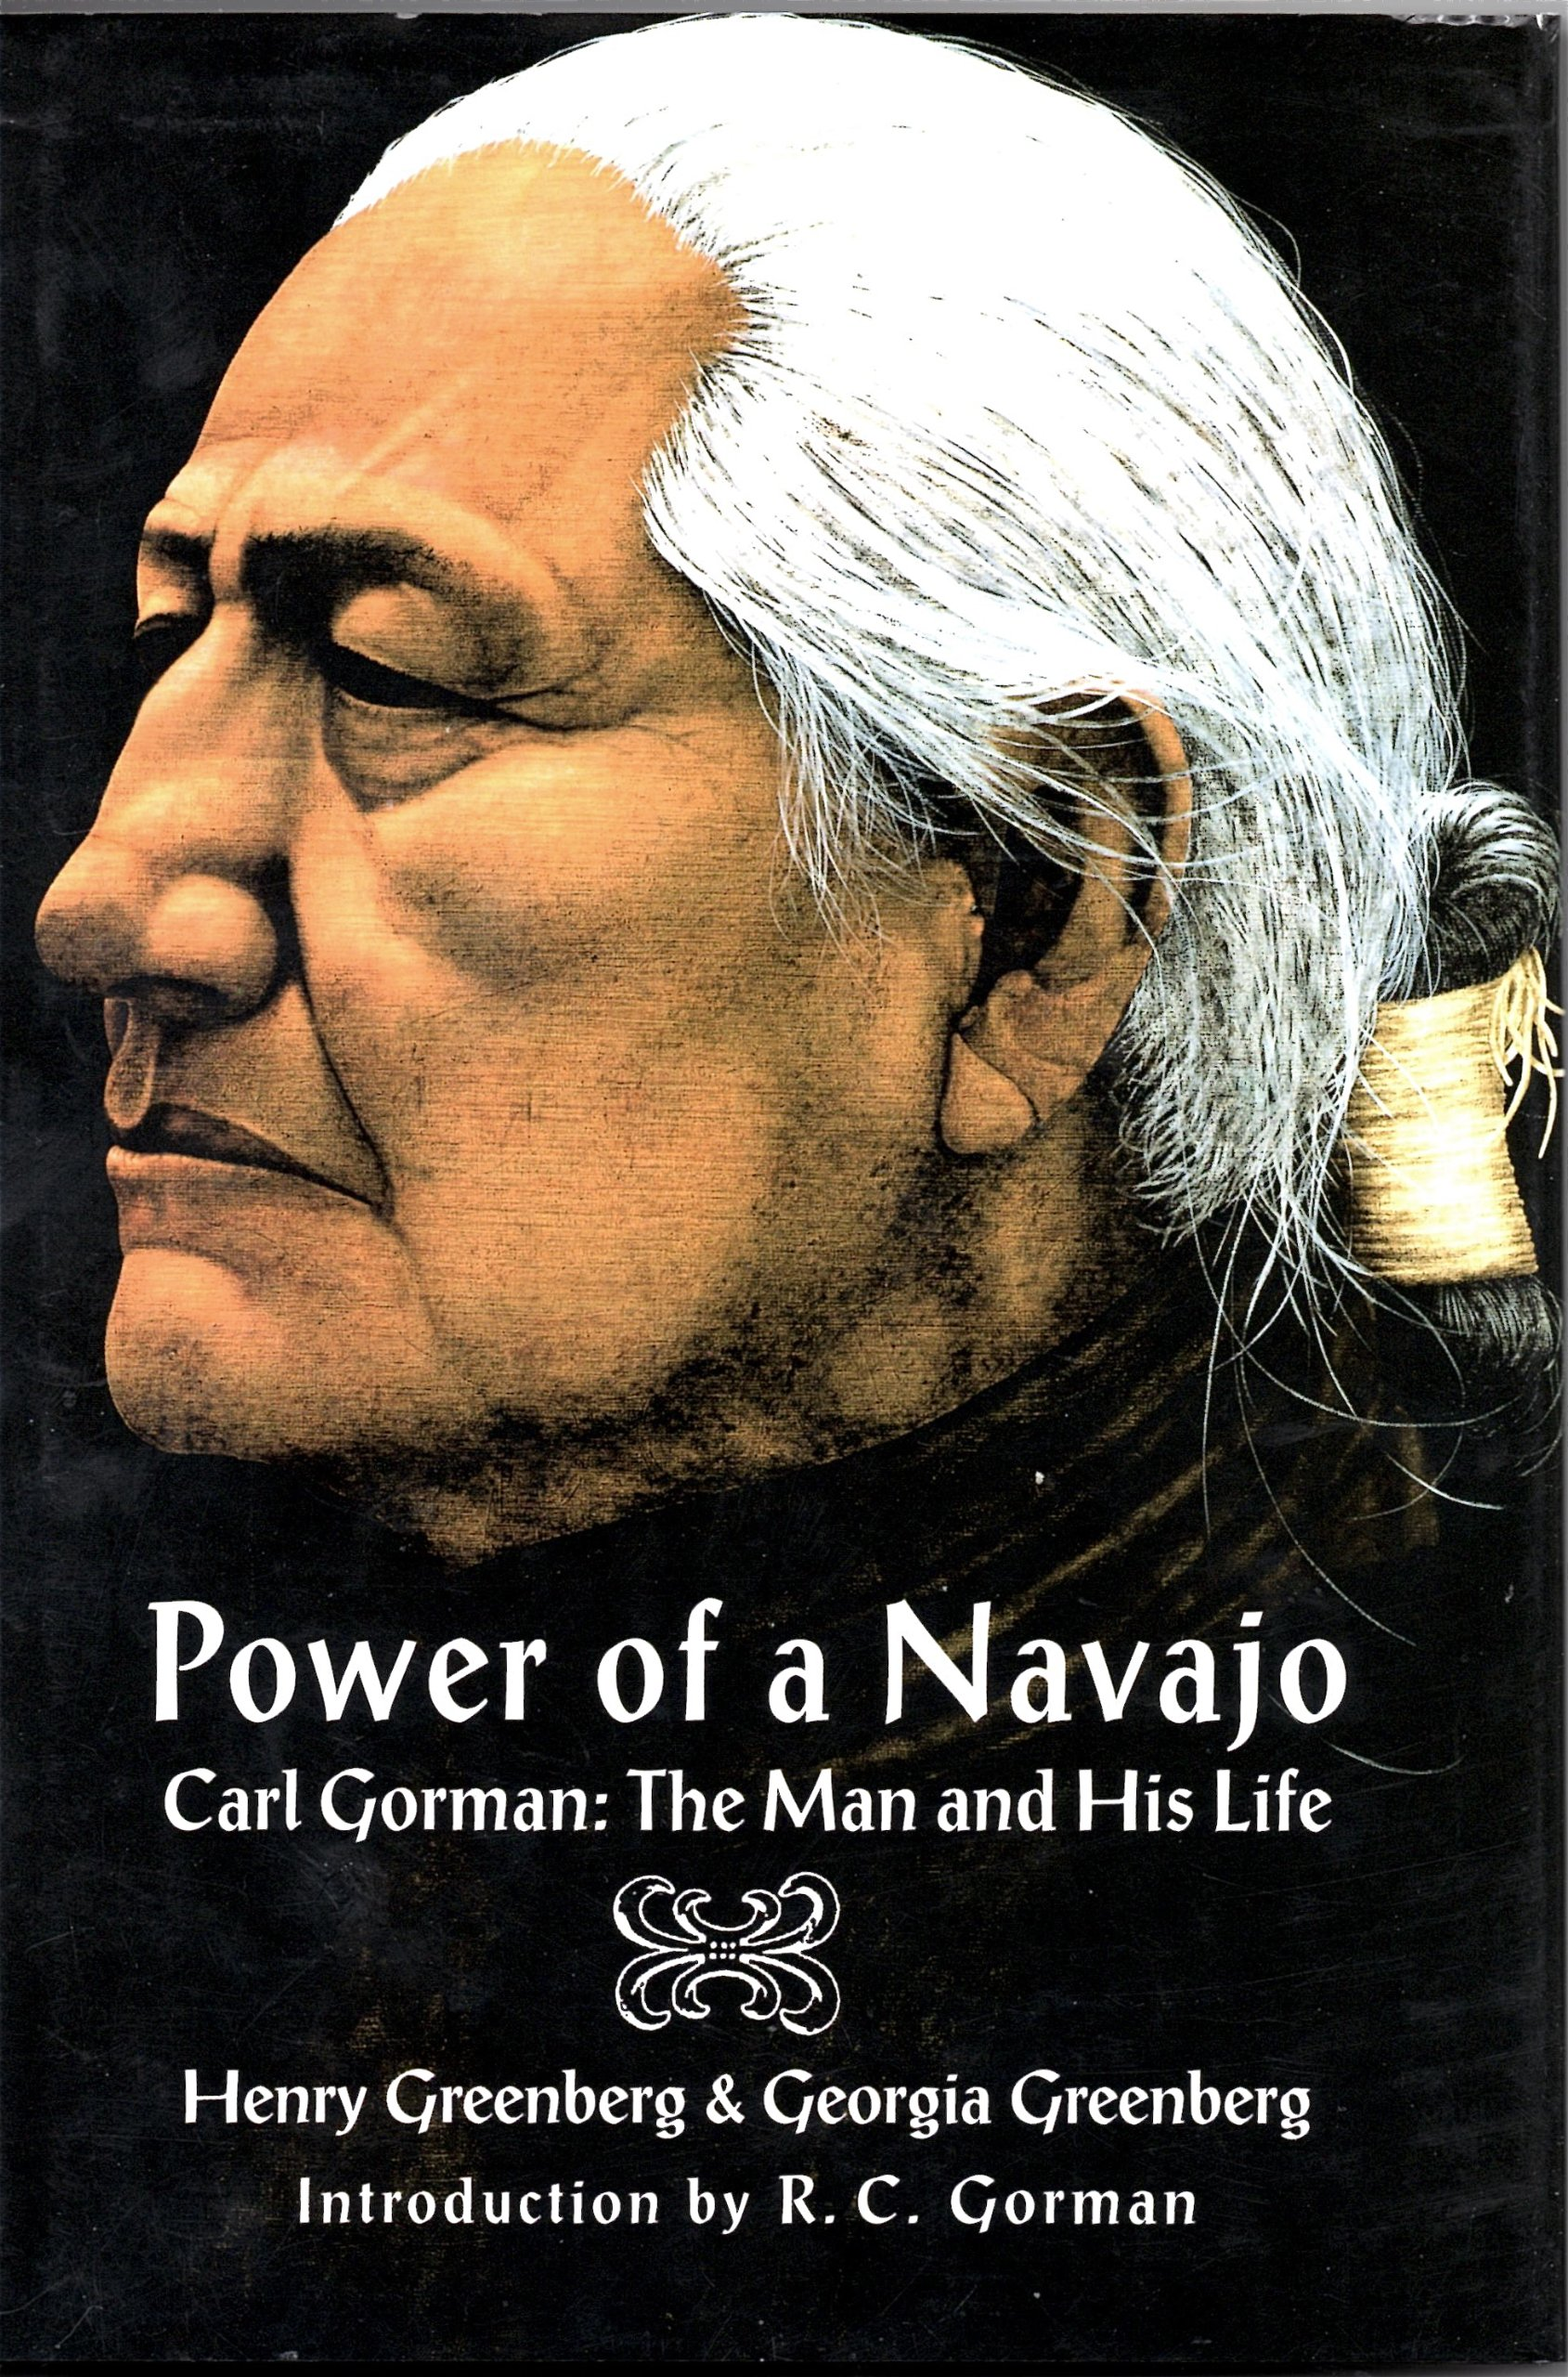 Power of a Navajo: Carl Gorman : The Man and His Life